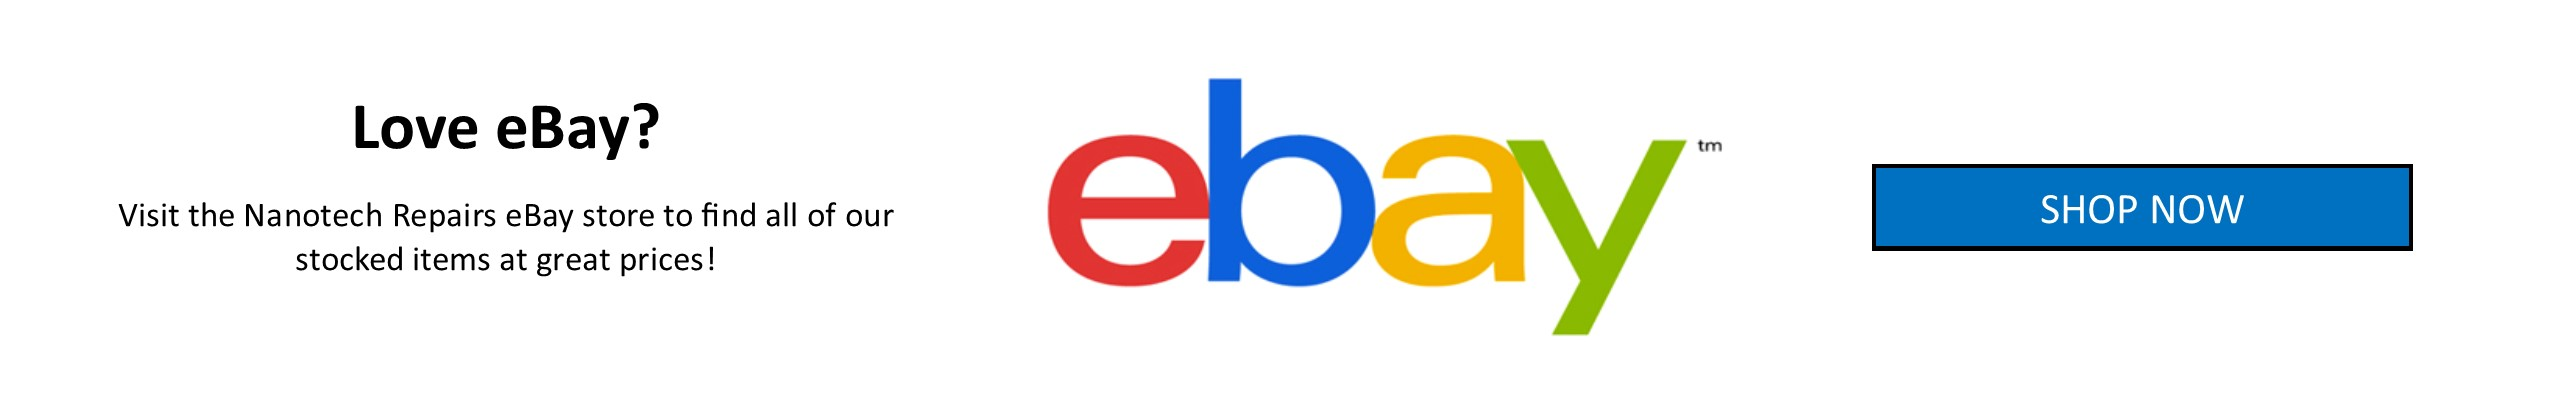 Shop from Nanotech Repairs eBay store NOW